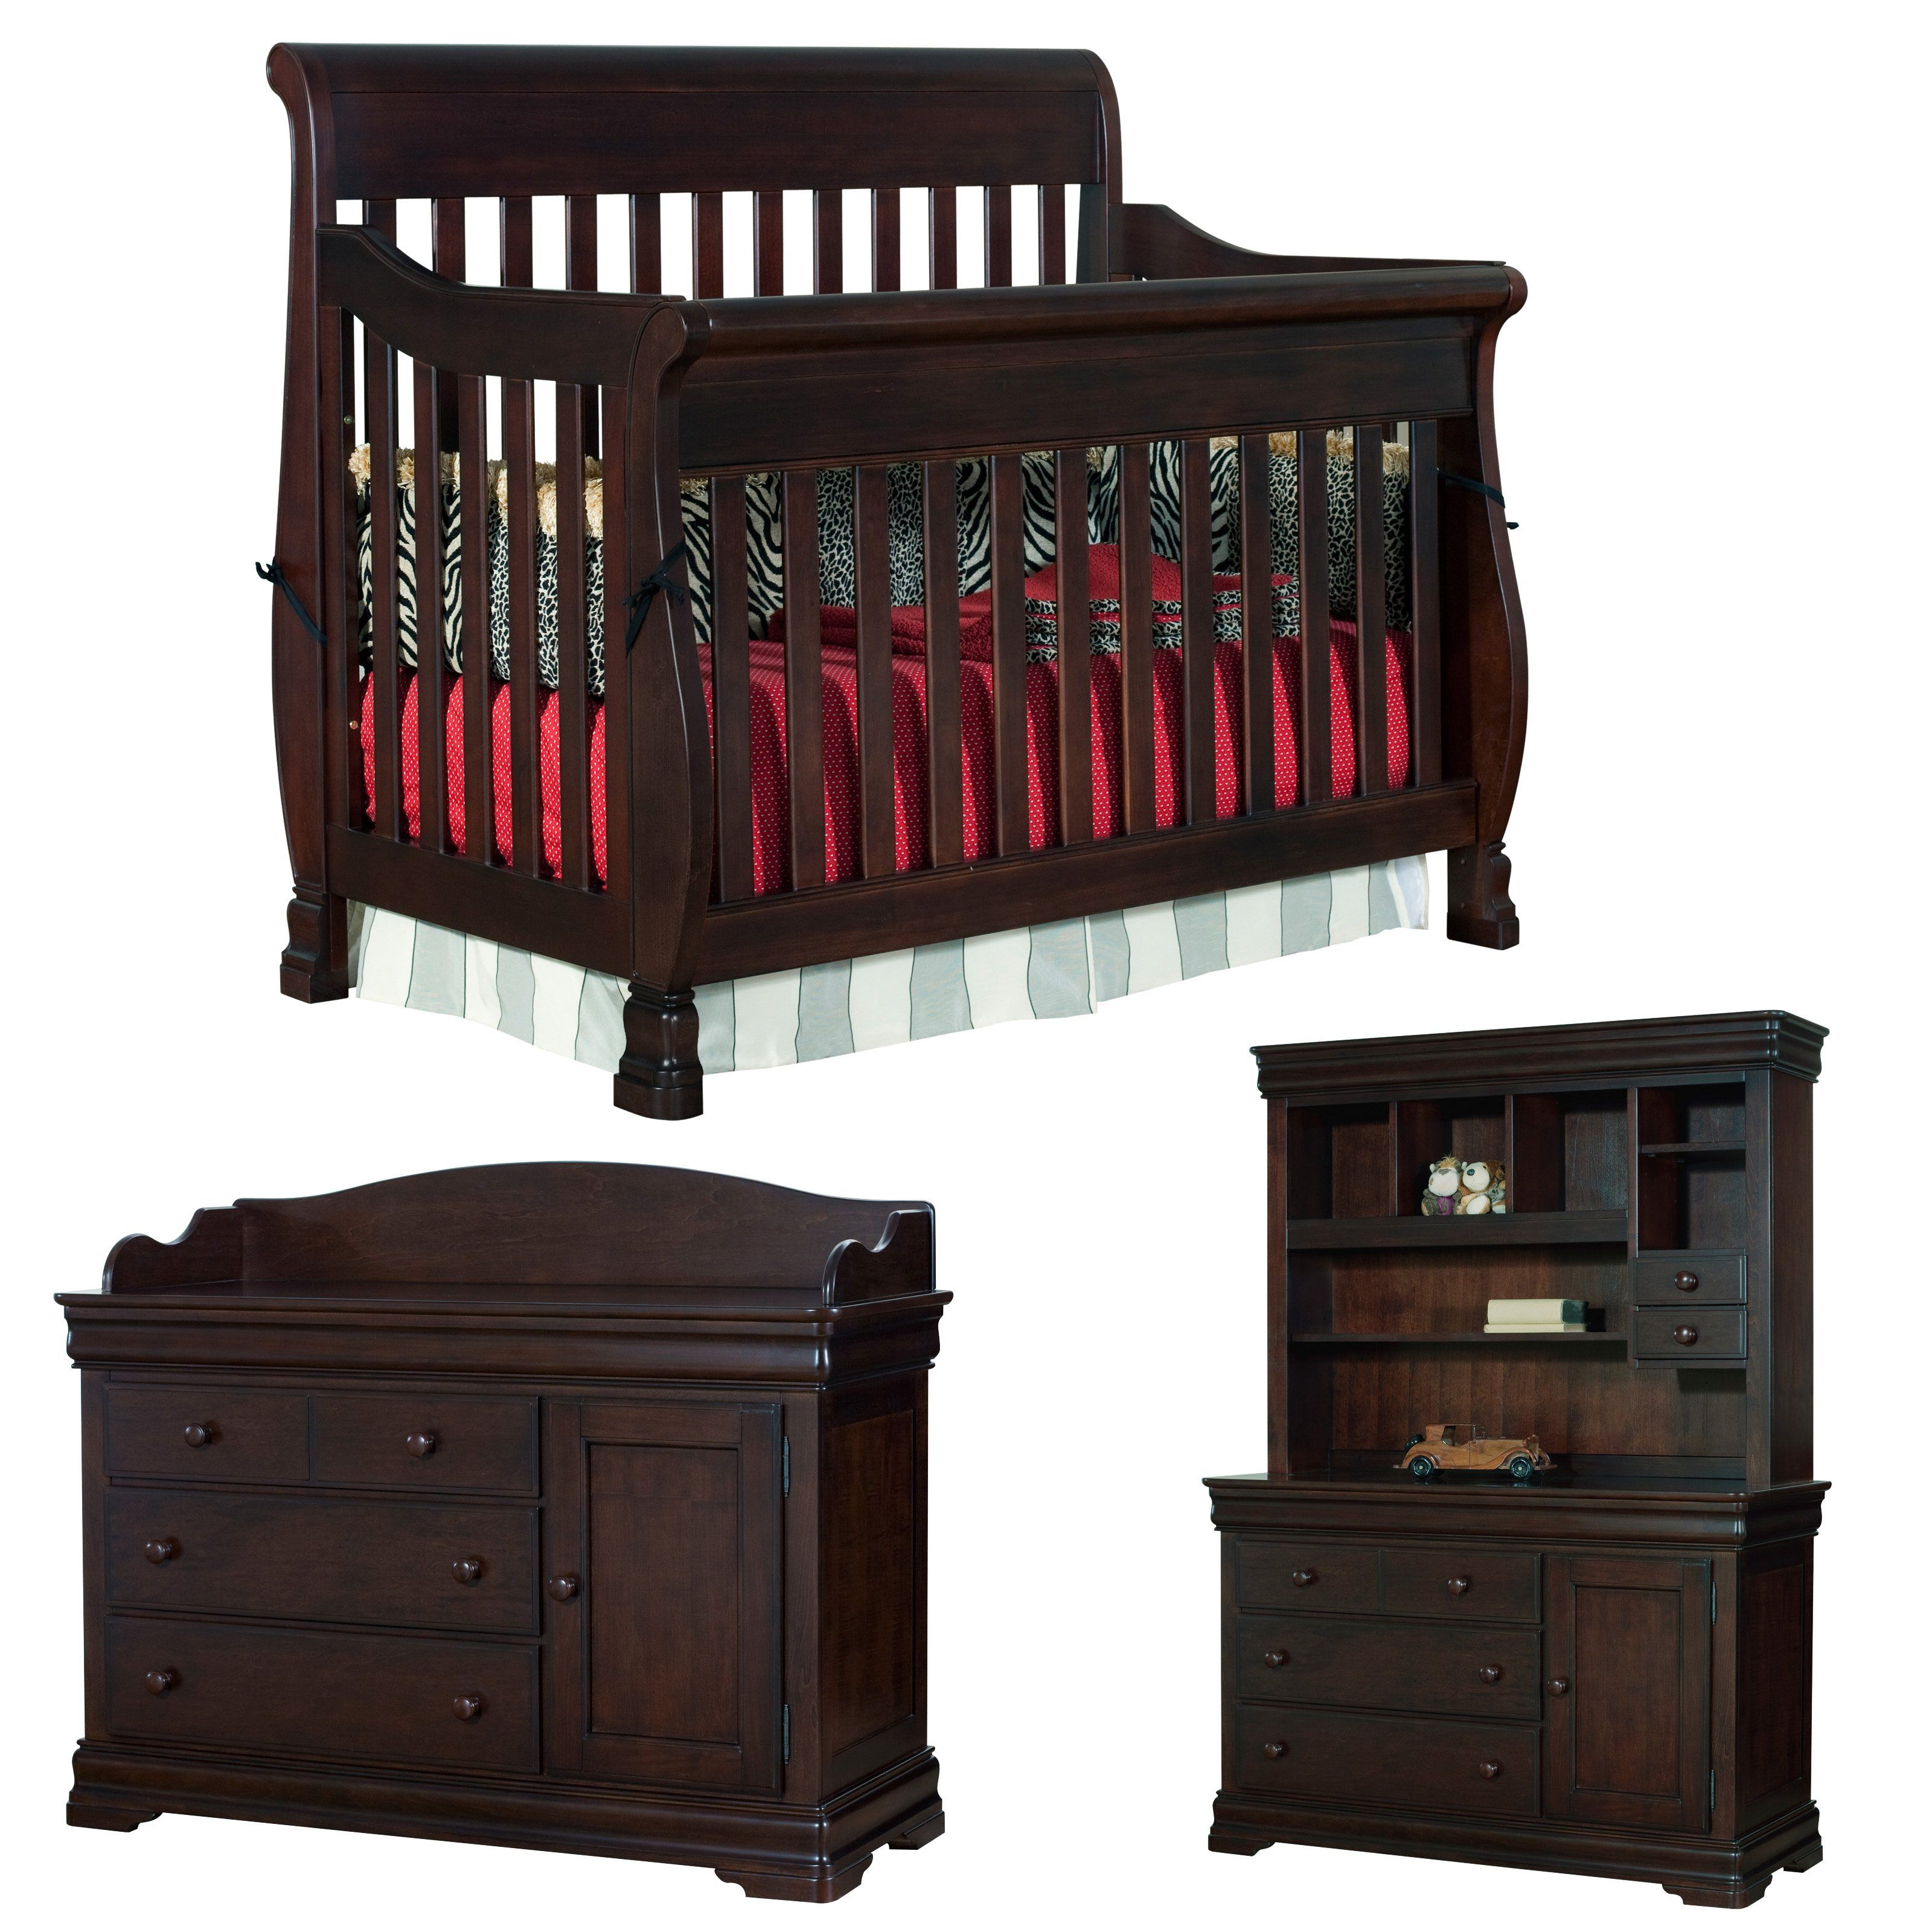 bay crib dark oak ikea larger shop packages view and chest wardrobe thenurseries gray modern room bassinet furniture drawer babies set newborn baby drawers nursery cribs changing with